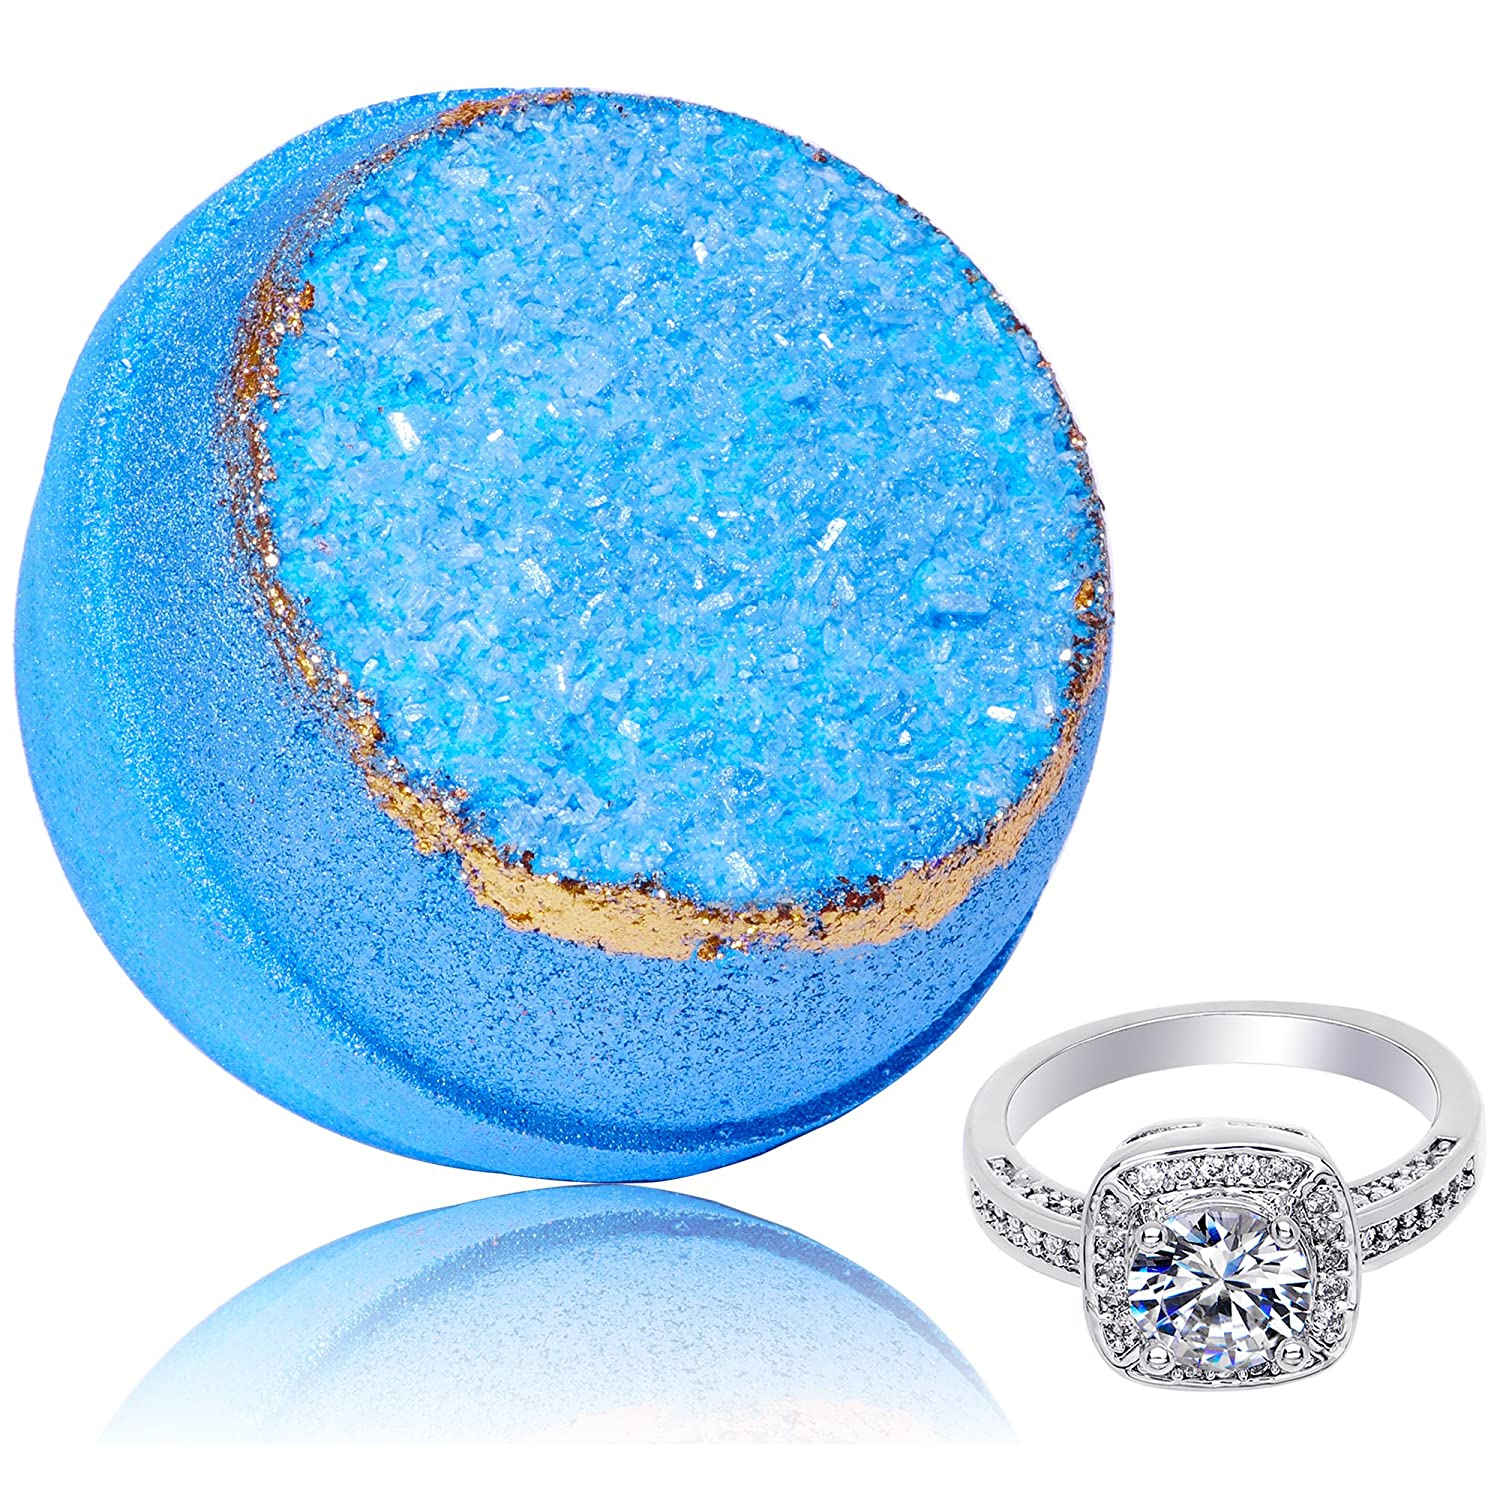 Bath Bomb with Size 6 Ring Inside Blue Geode Extra Large 10 oz. Made in USA